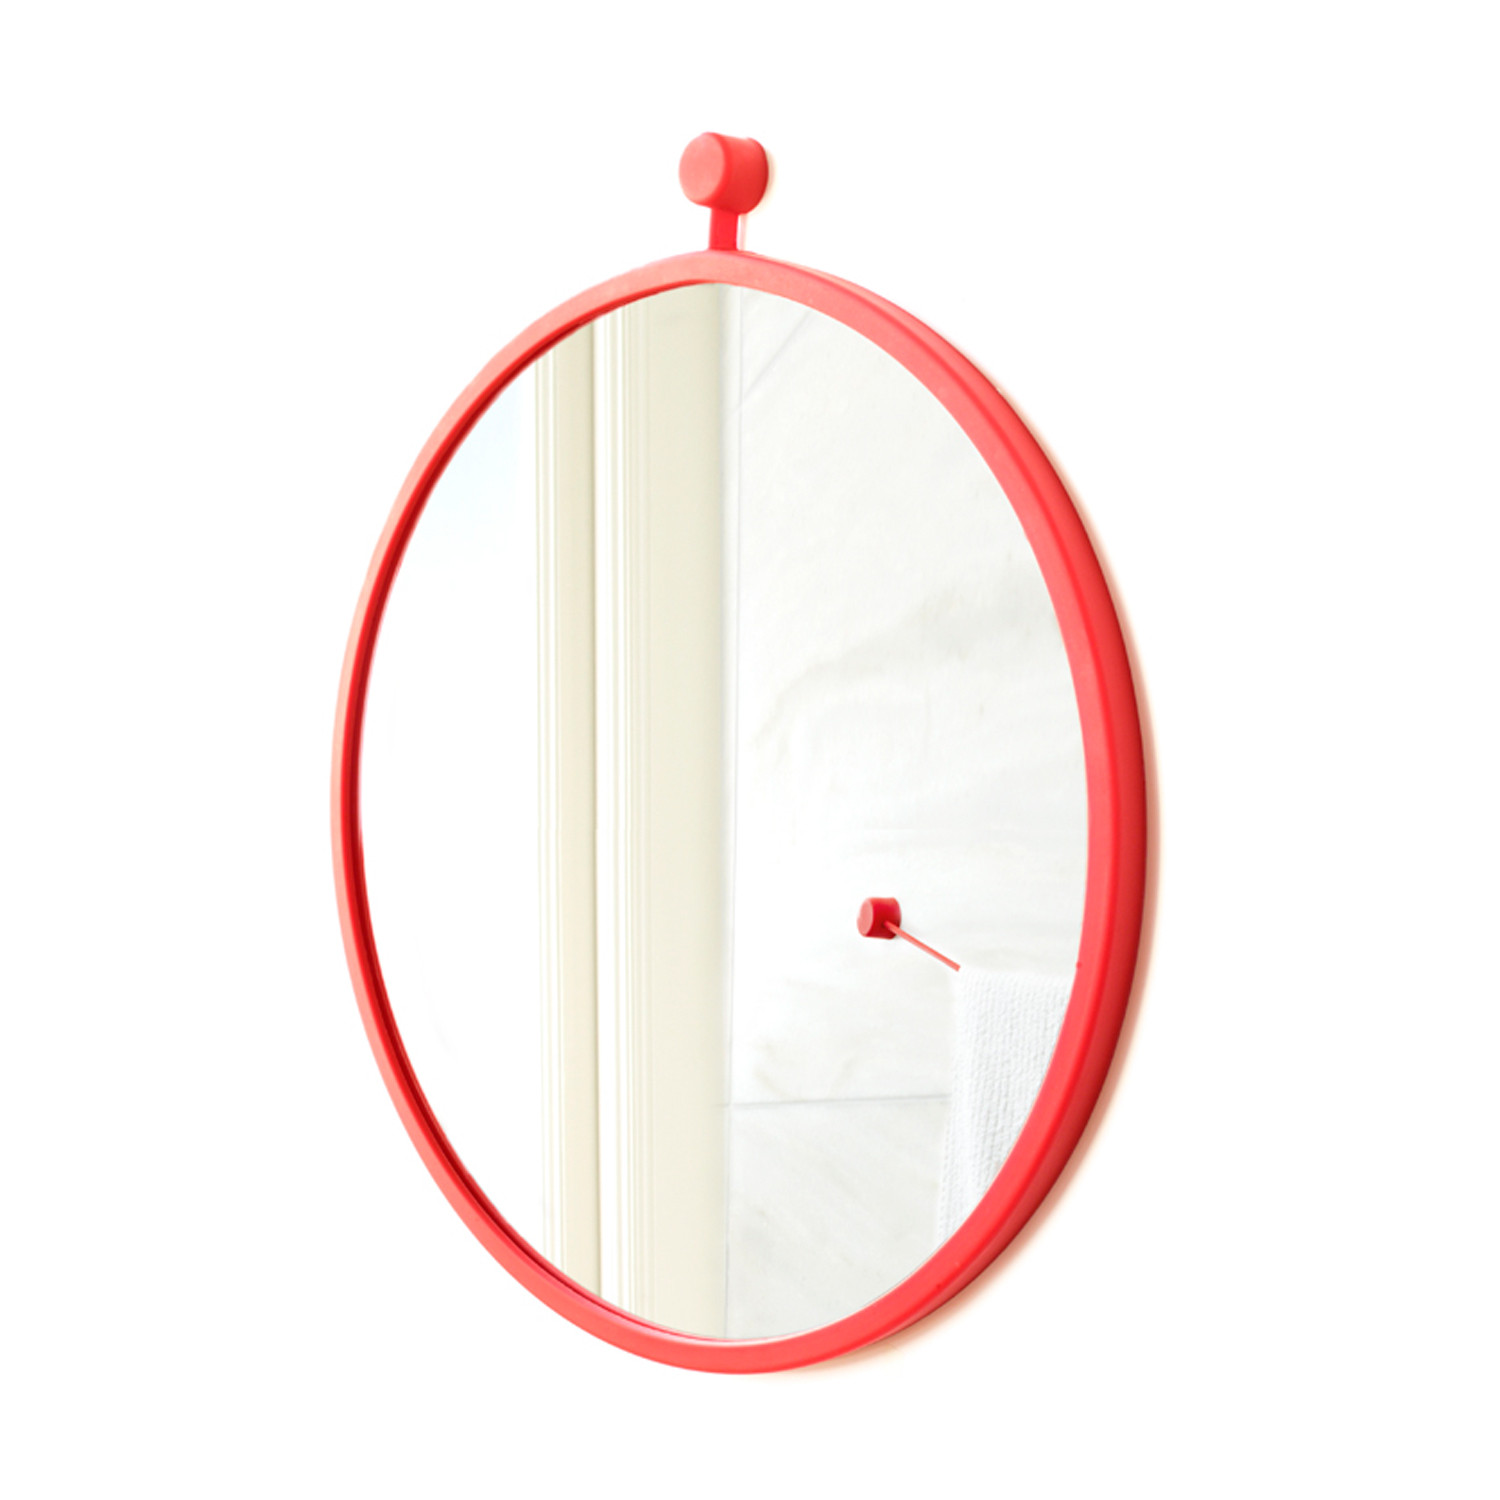 Hanging mirror ferrari red small kontext r touch for Small hanging mirror